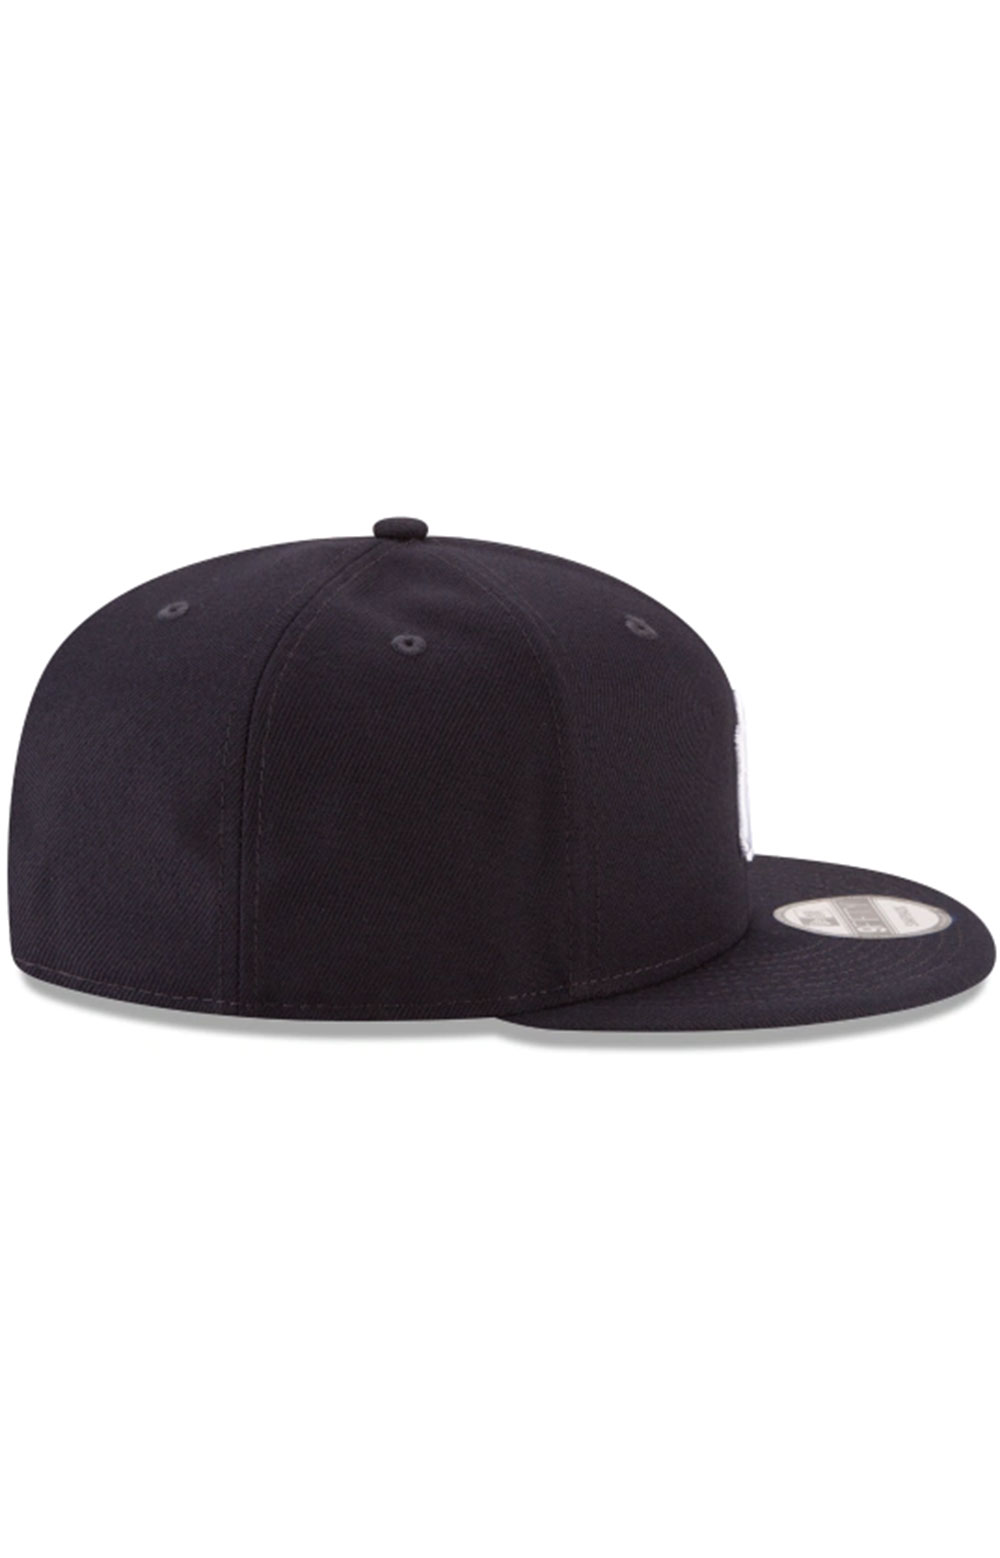 New York Yankees Team Color Basic 9Fifty Snap-Back Hat  3